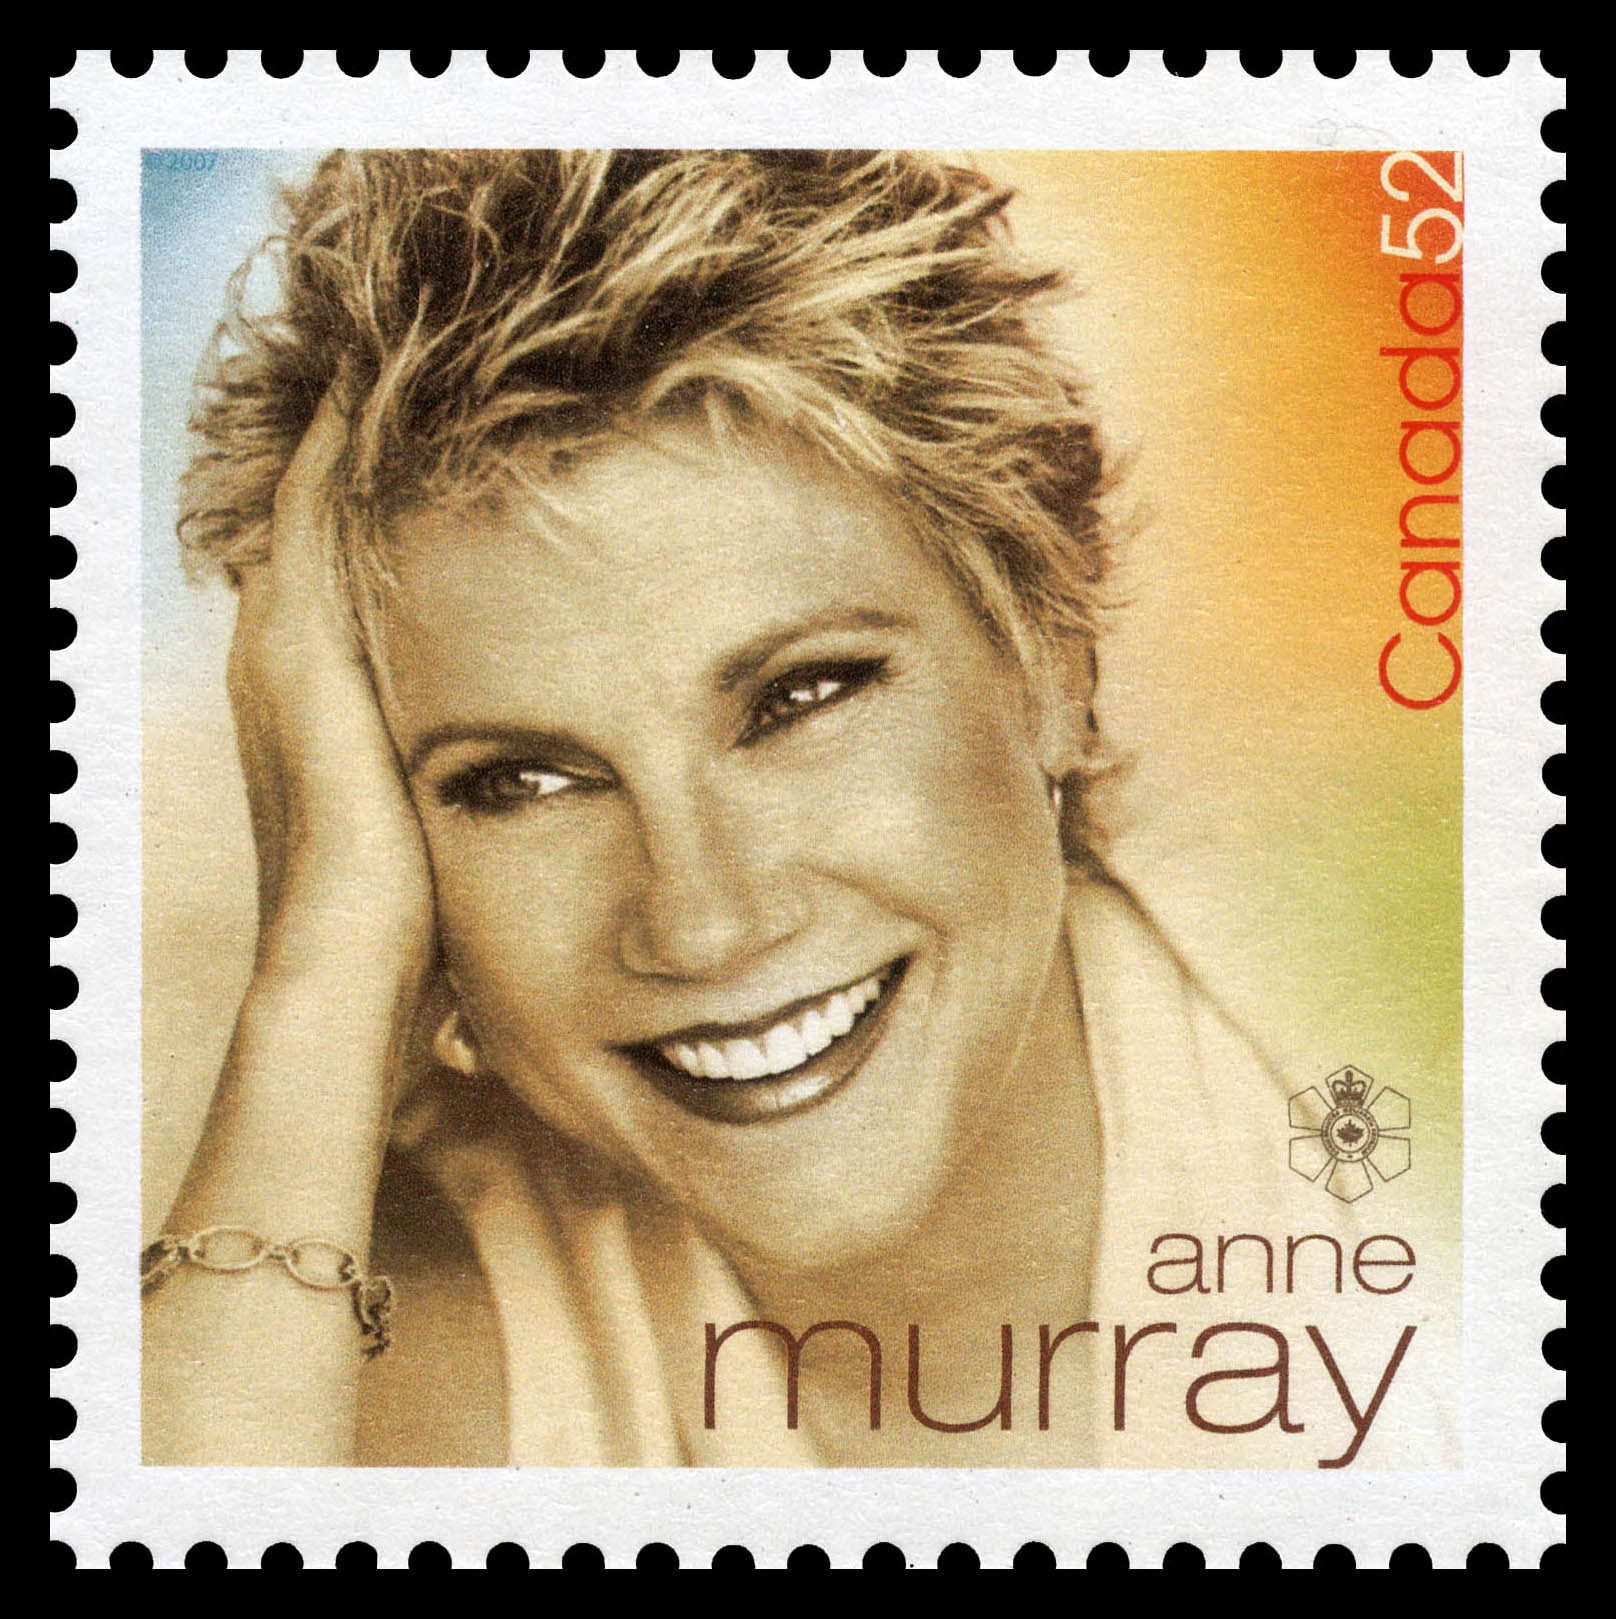 Anne Murray Canada Postage Stamp   Canadian Recording Artists